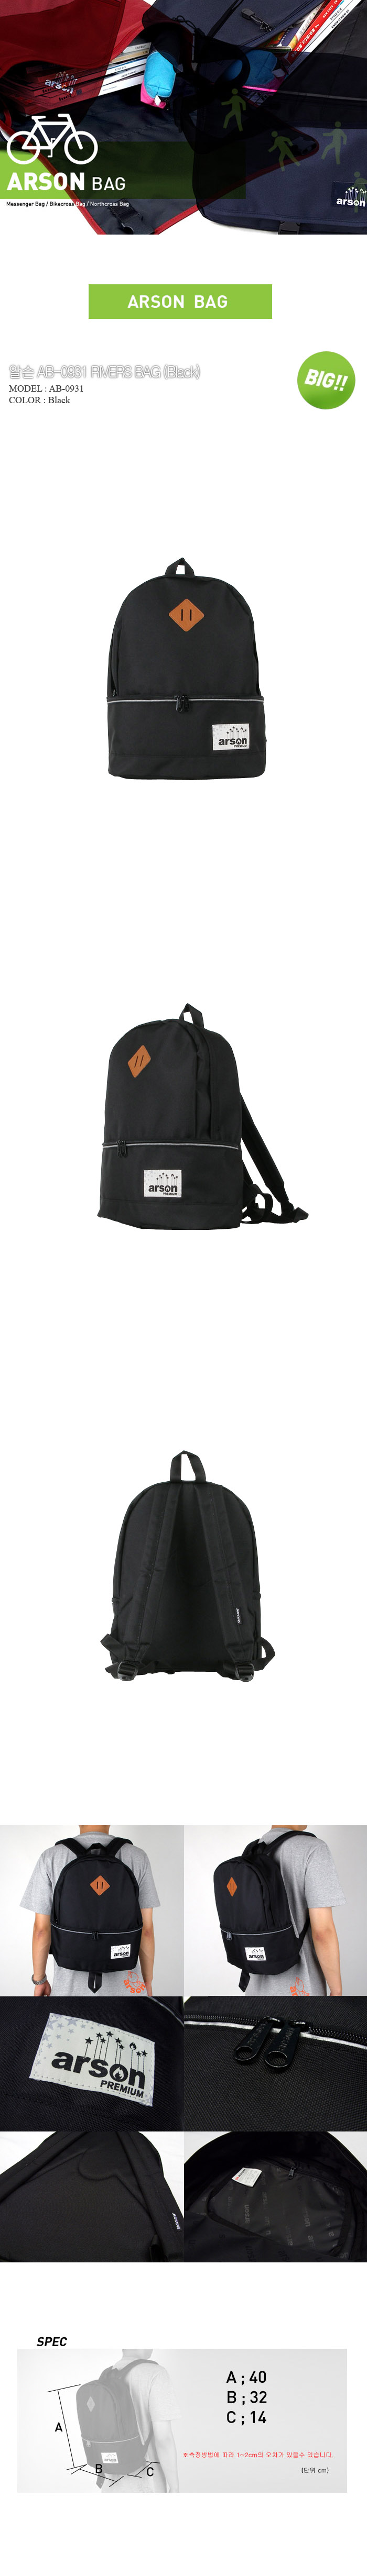 [ ARSON ] AB-0931 (Black/Black)/Backpack School Bag